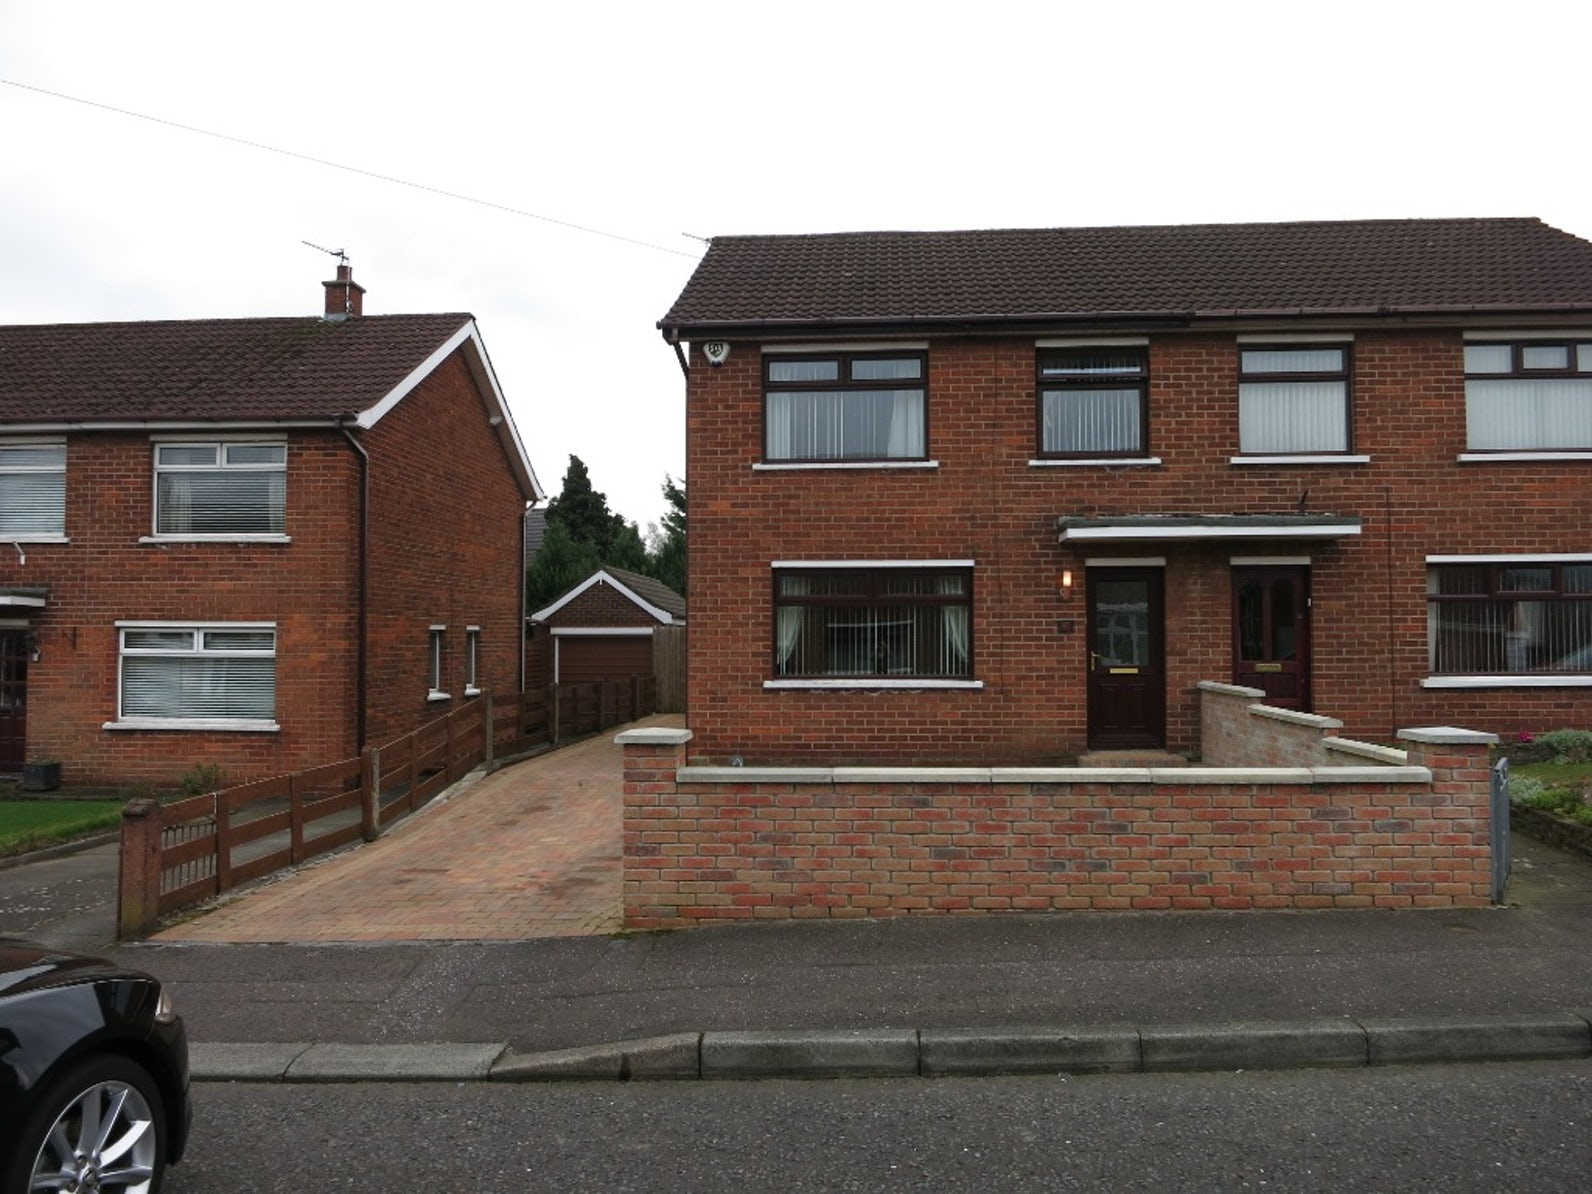 3 Bedroom Property For Rent